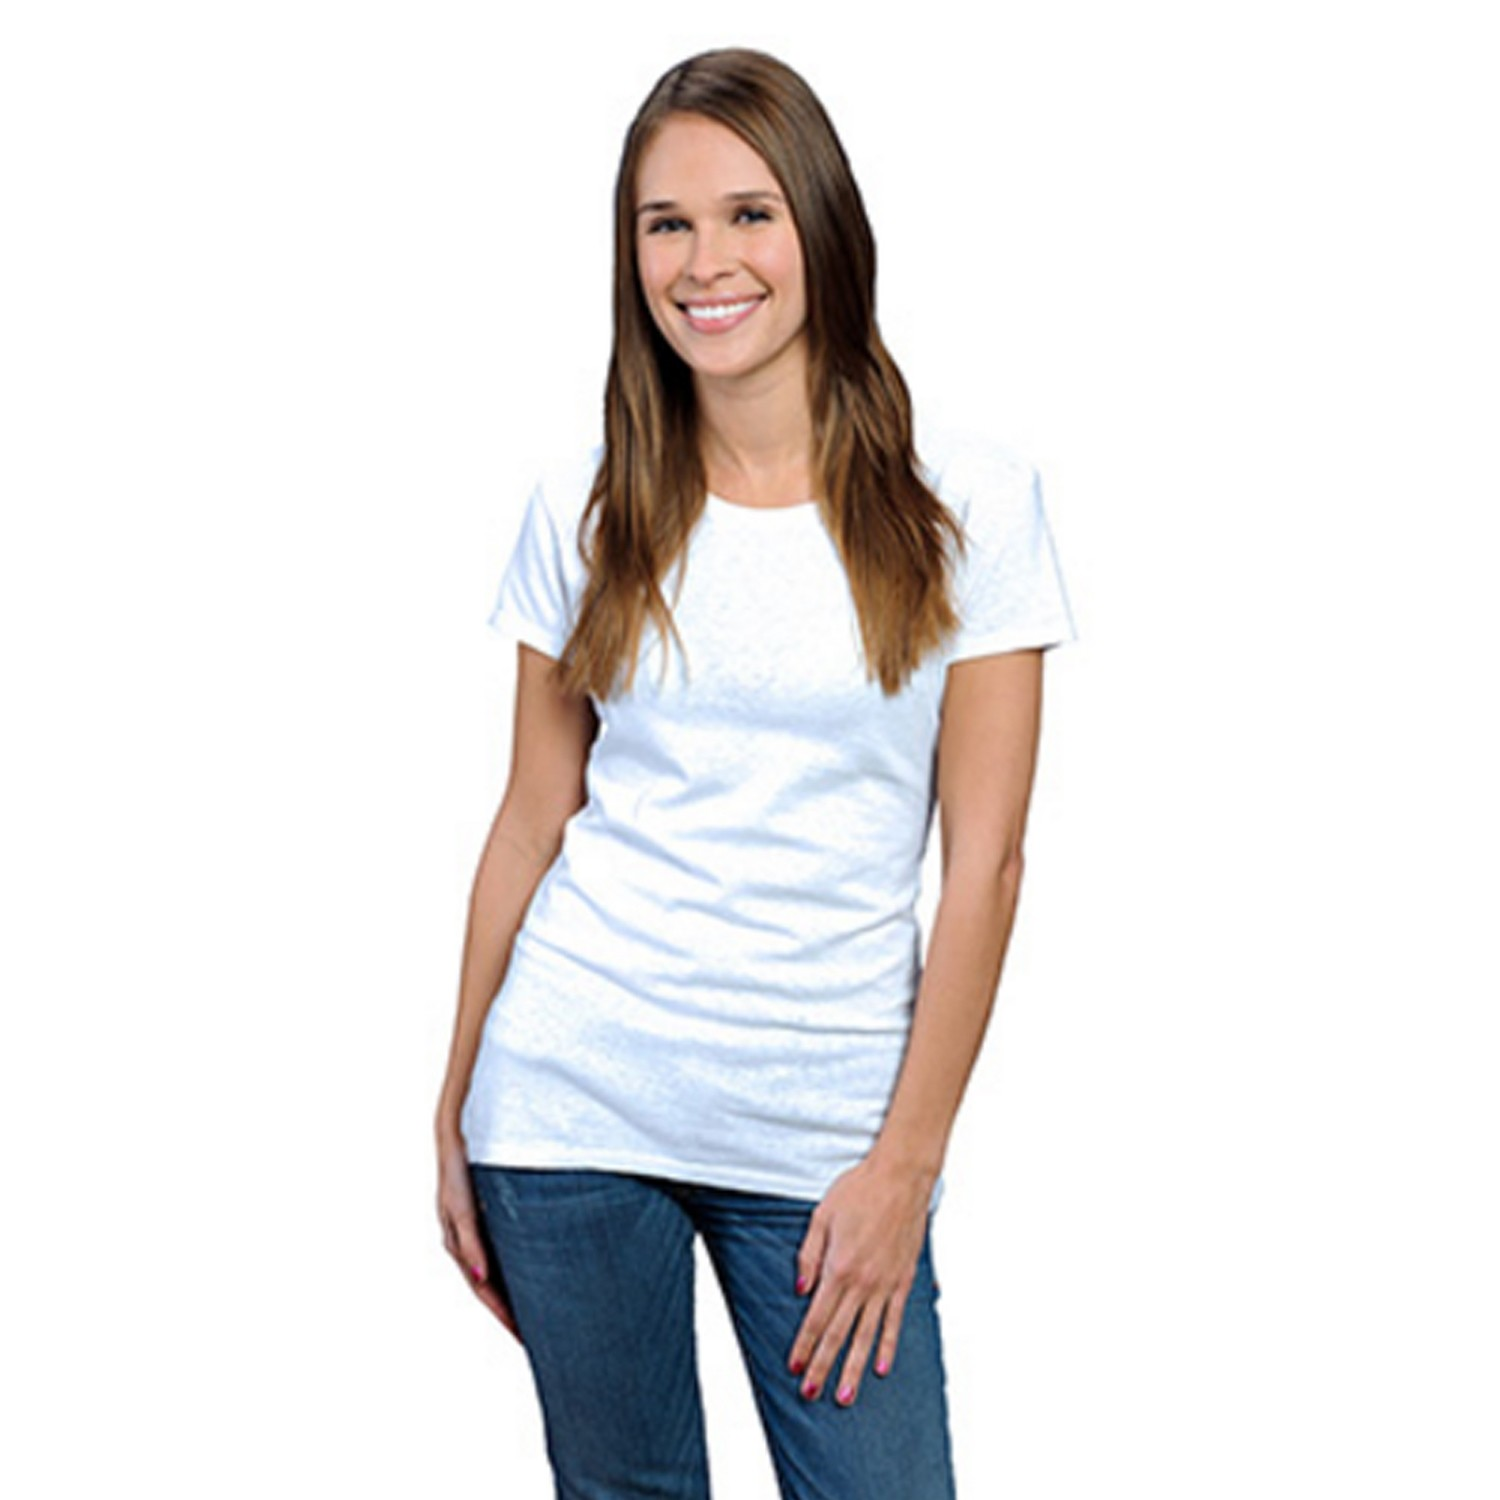 ONNO Women's Organic Bamboo T-shirts. Short Sleeves. Round neck.